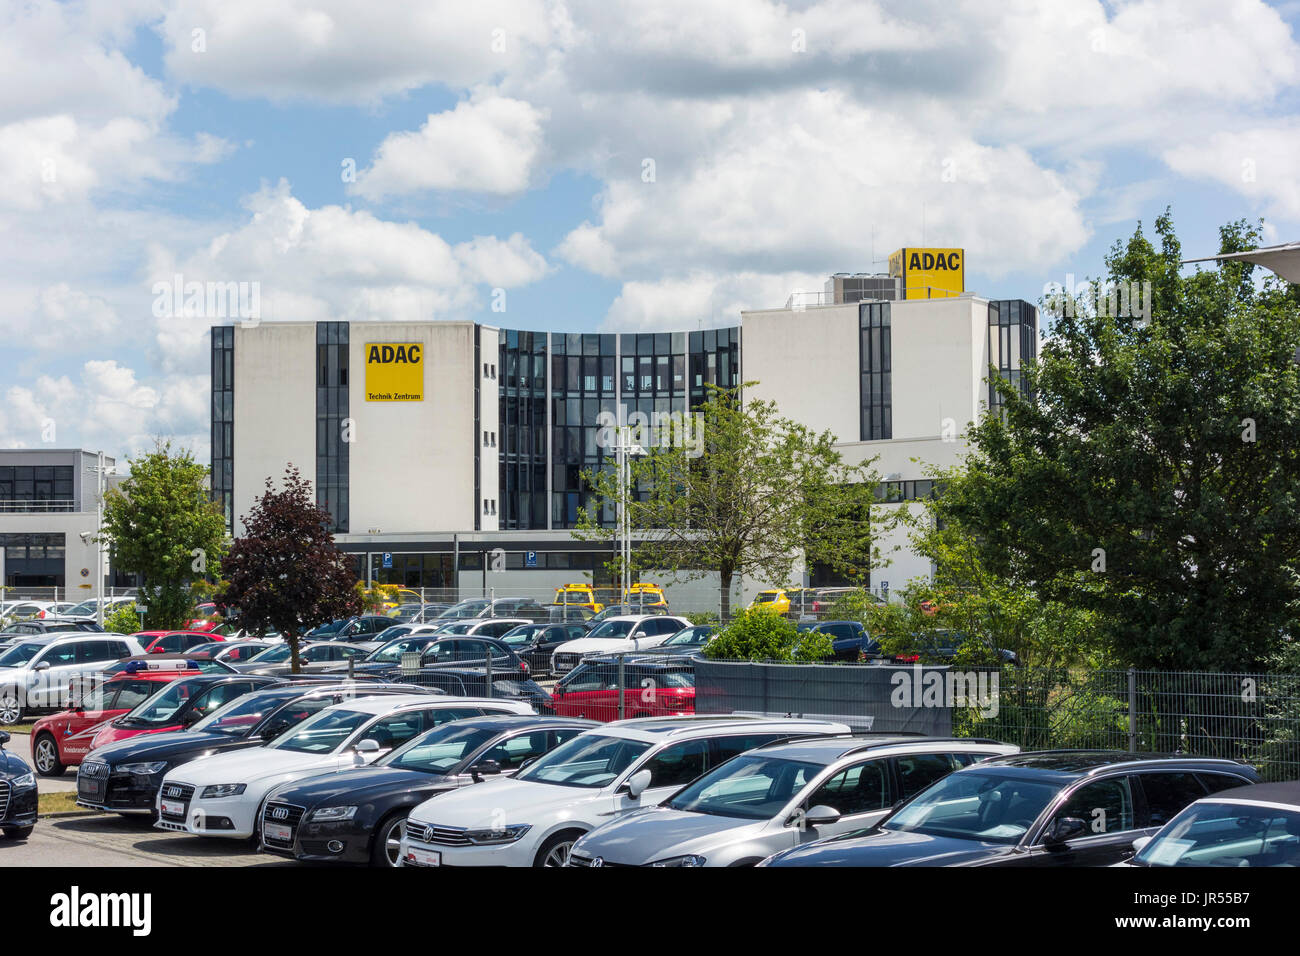 ADAC Technik Zentrum - Landsberg am Lech, Germany - Stock Image